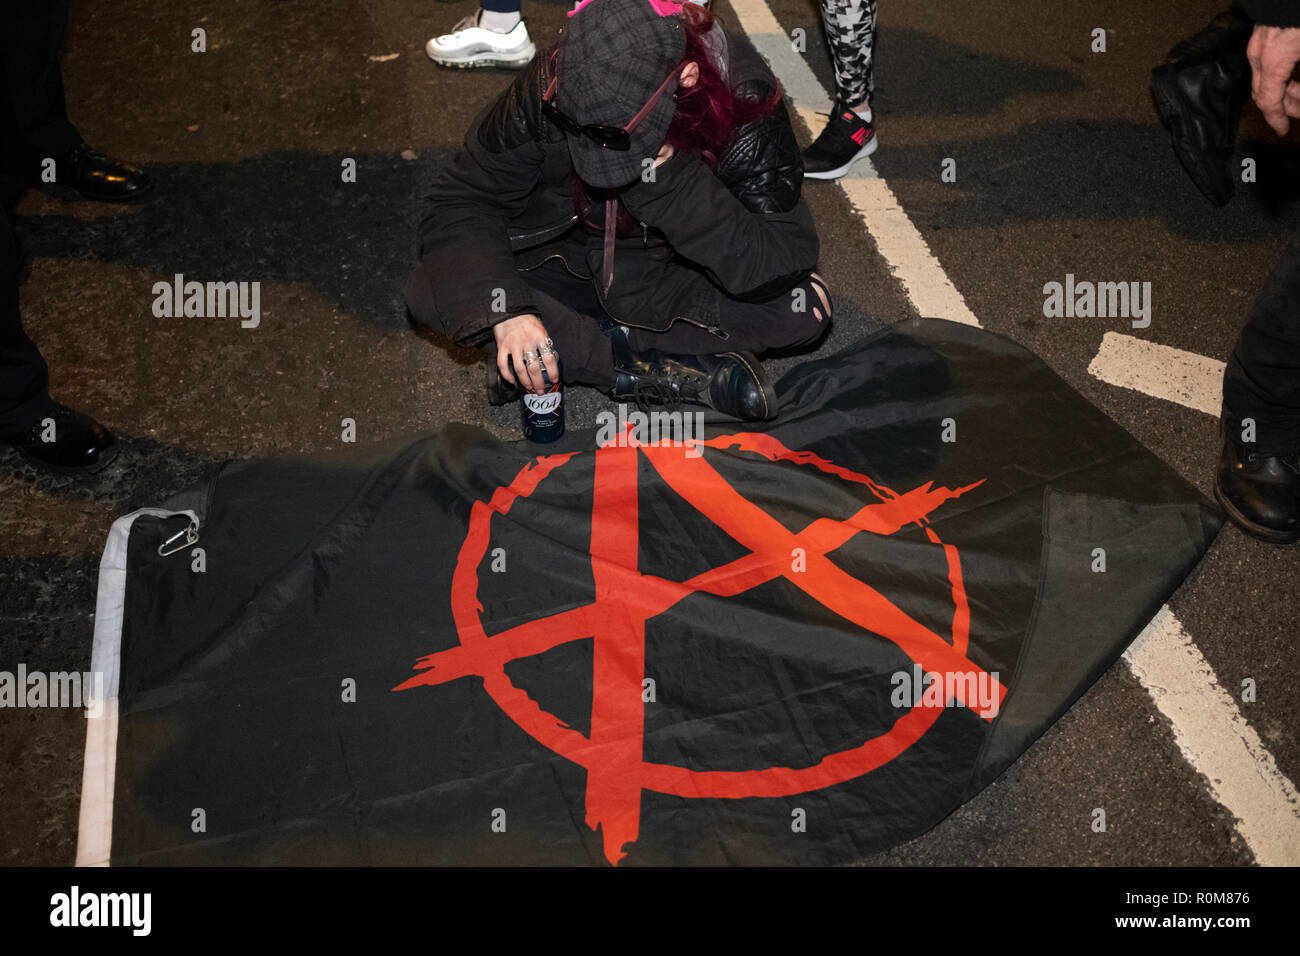 London, UK. 5th Nov 2018. Million Mask March rally in central London on the 5th November 2018 with Anonymus supporters wearing the iconic Guy Fawkes mask. Credit: Giovanni Strondl/Alamy Live News - Stock Image